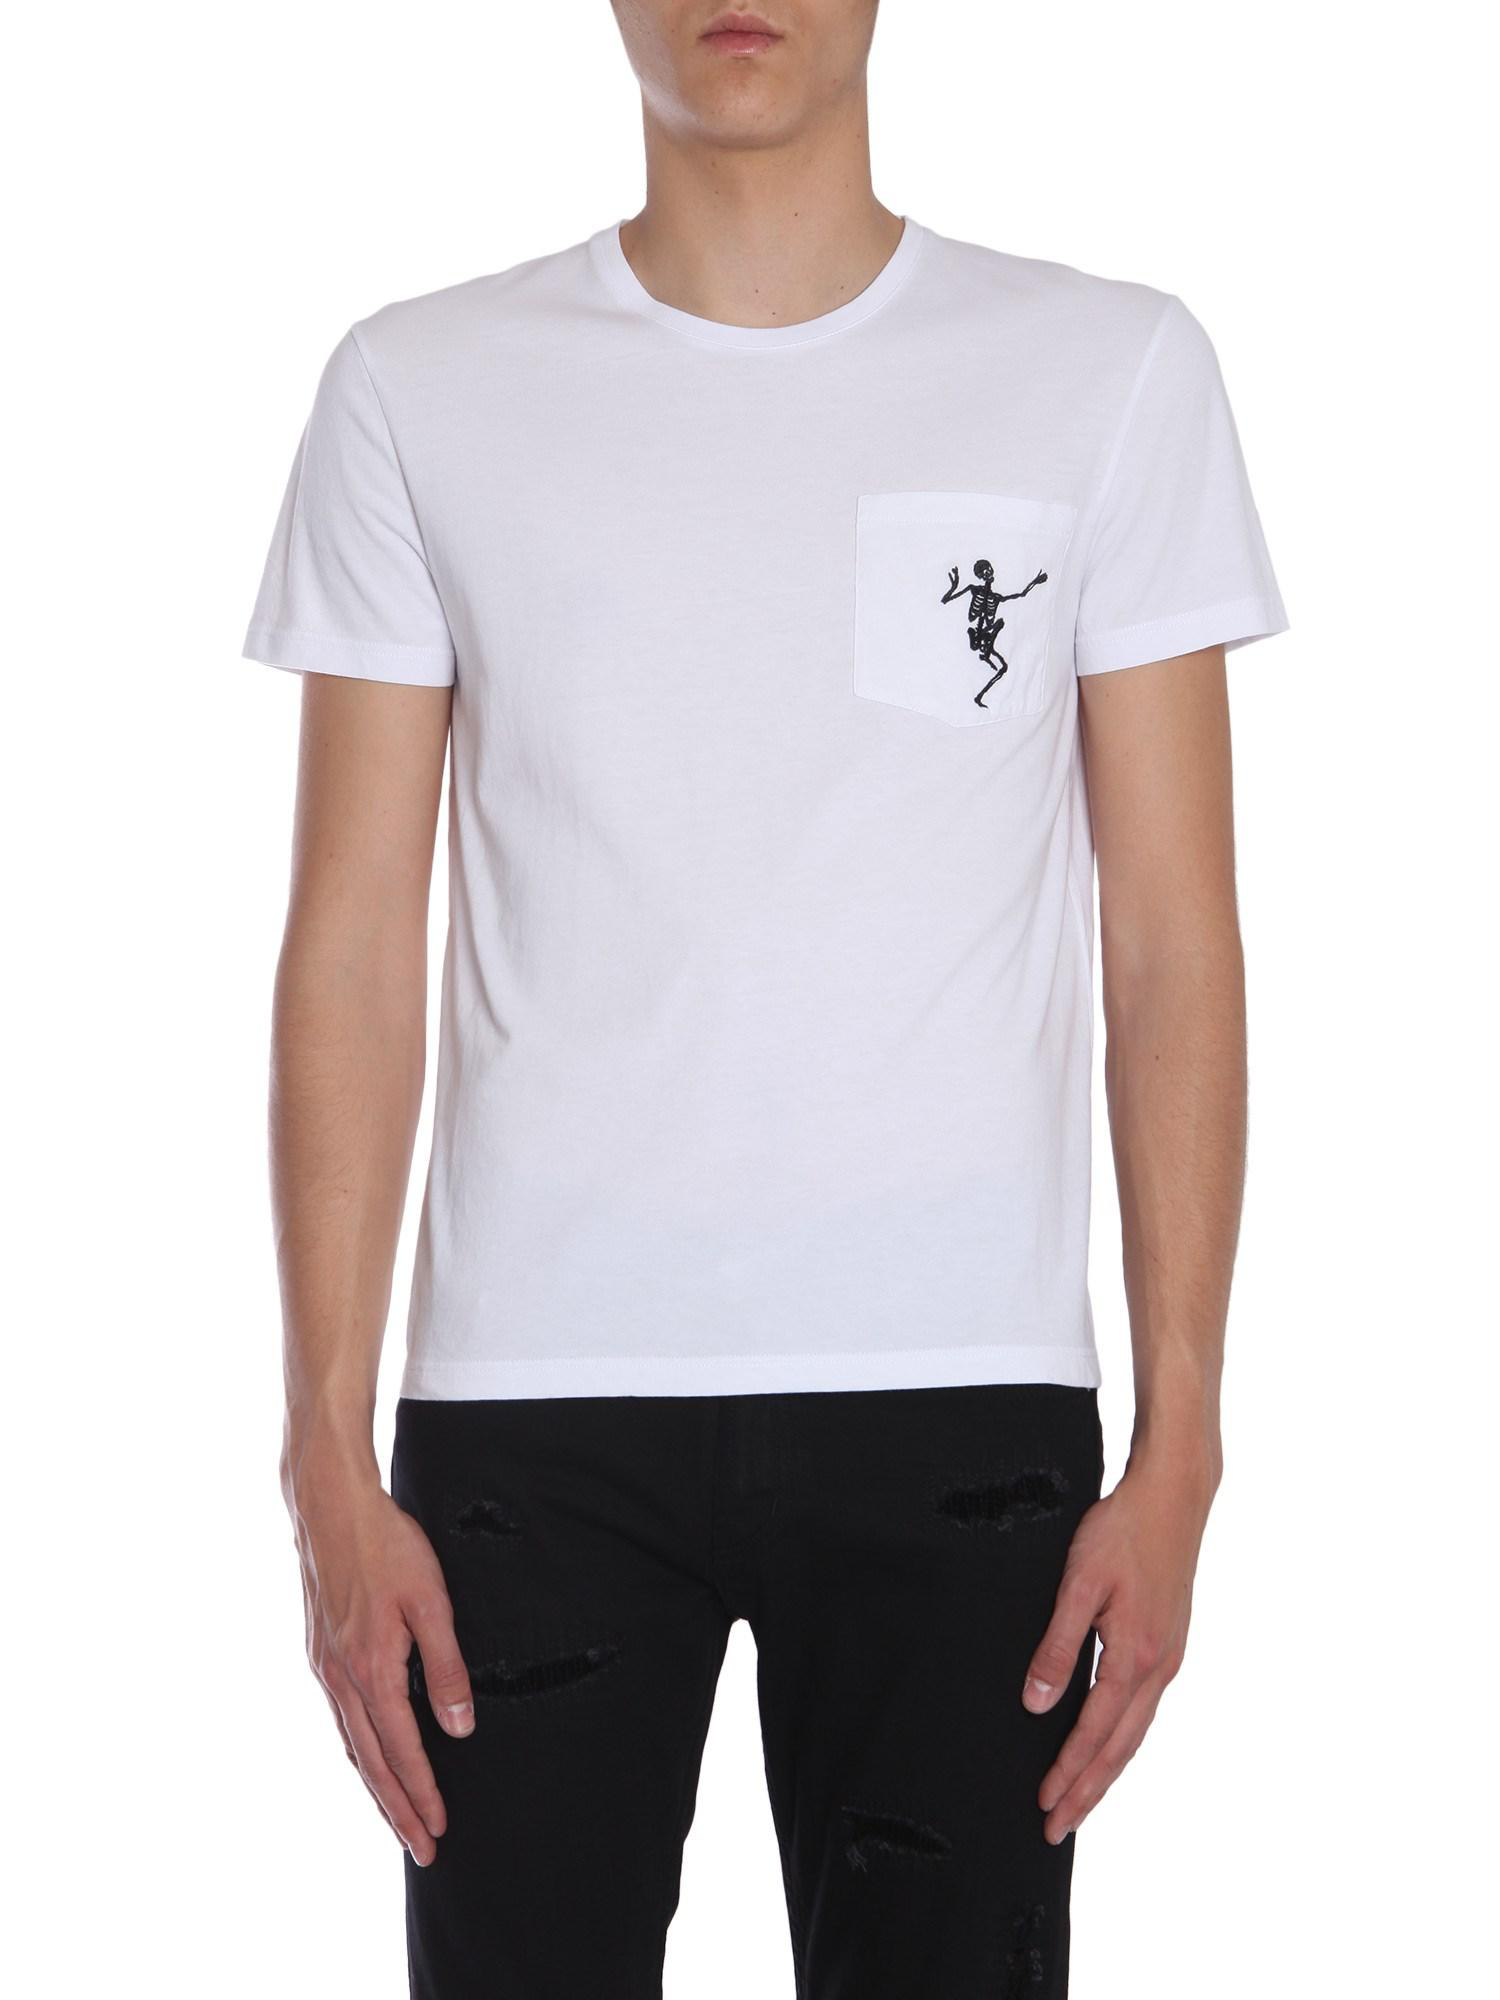 000e0bfd Alexander McQueen. Men's White Cotton T-shirt With Dancing Skeleton  Embroidery